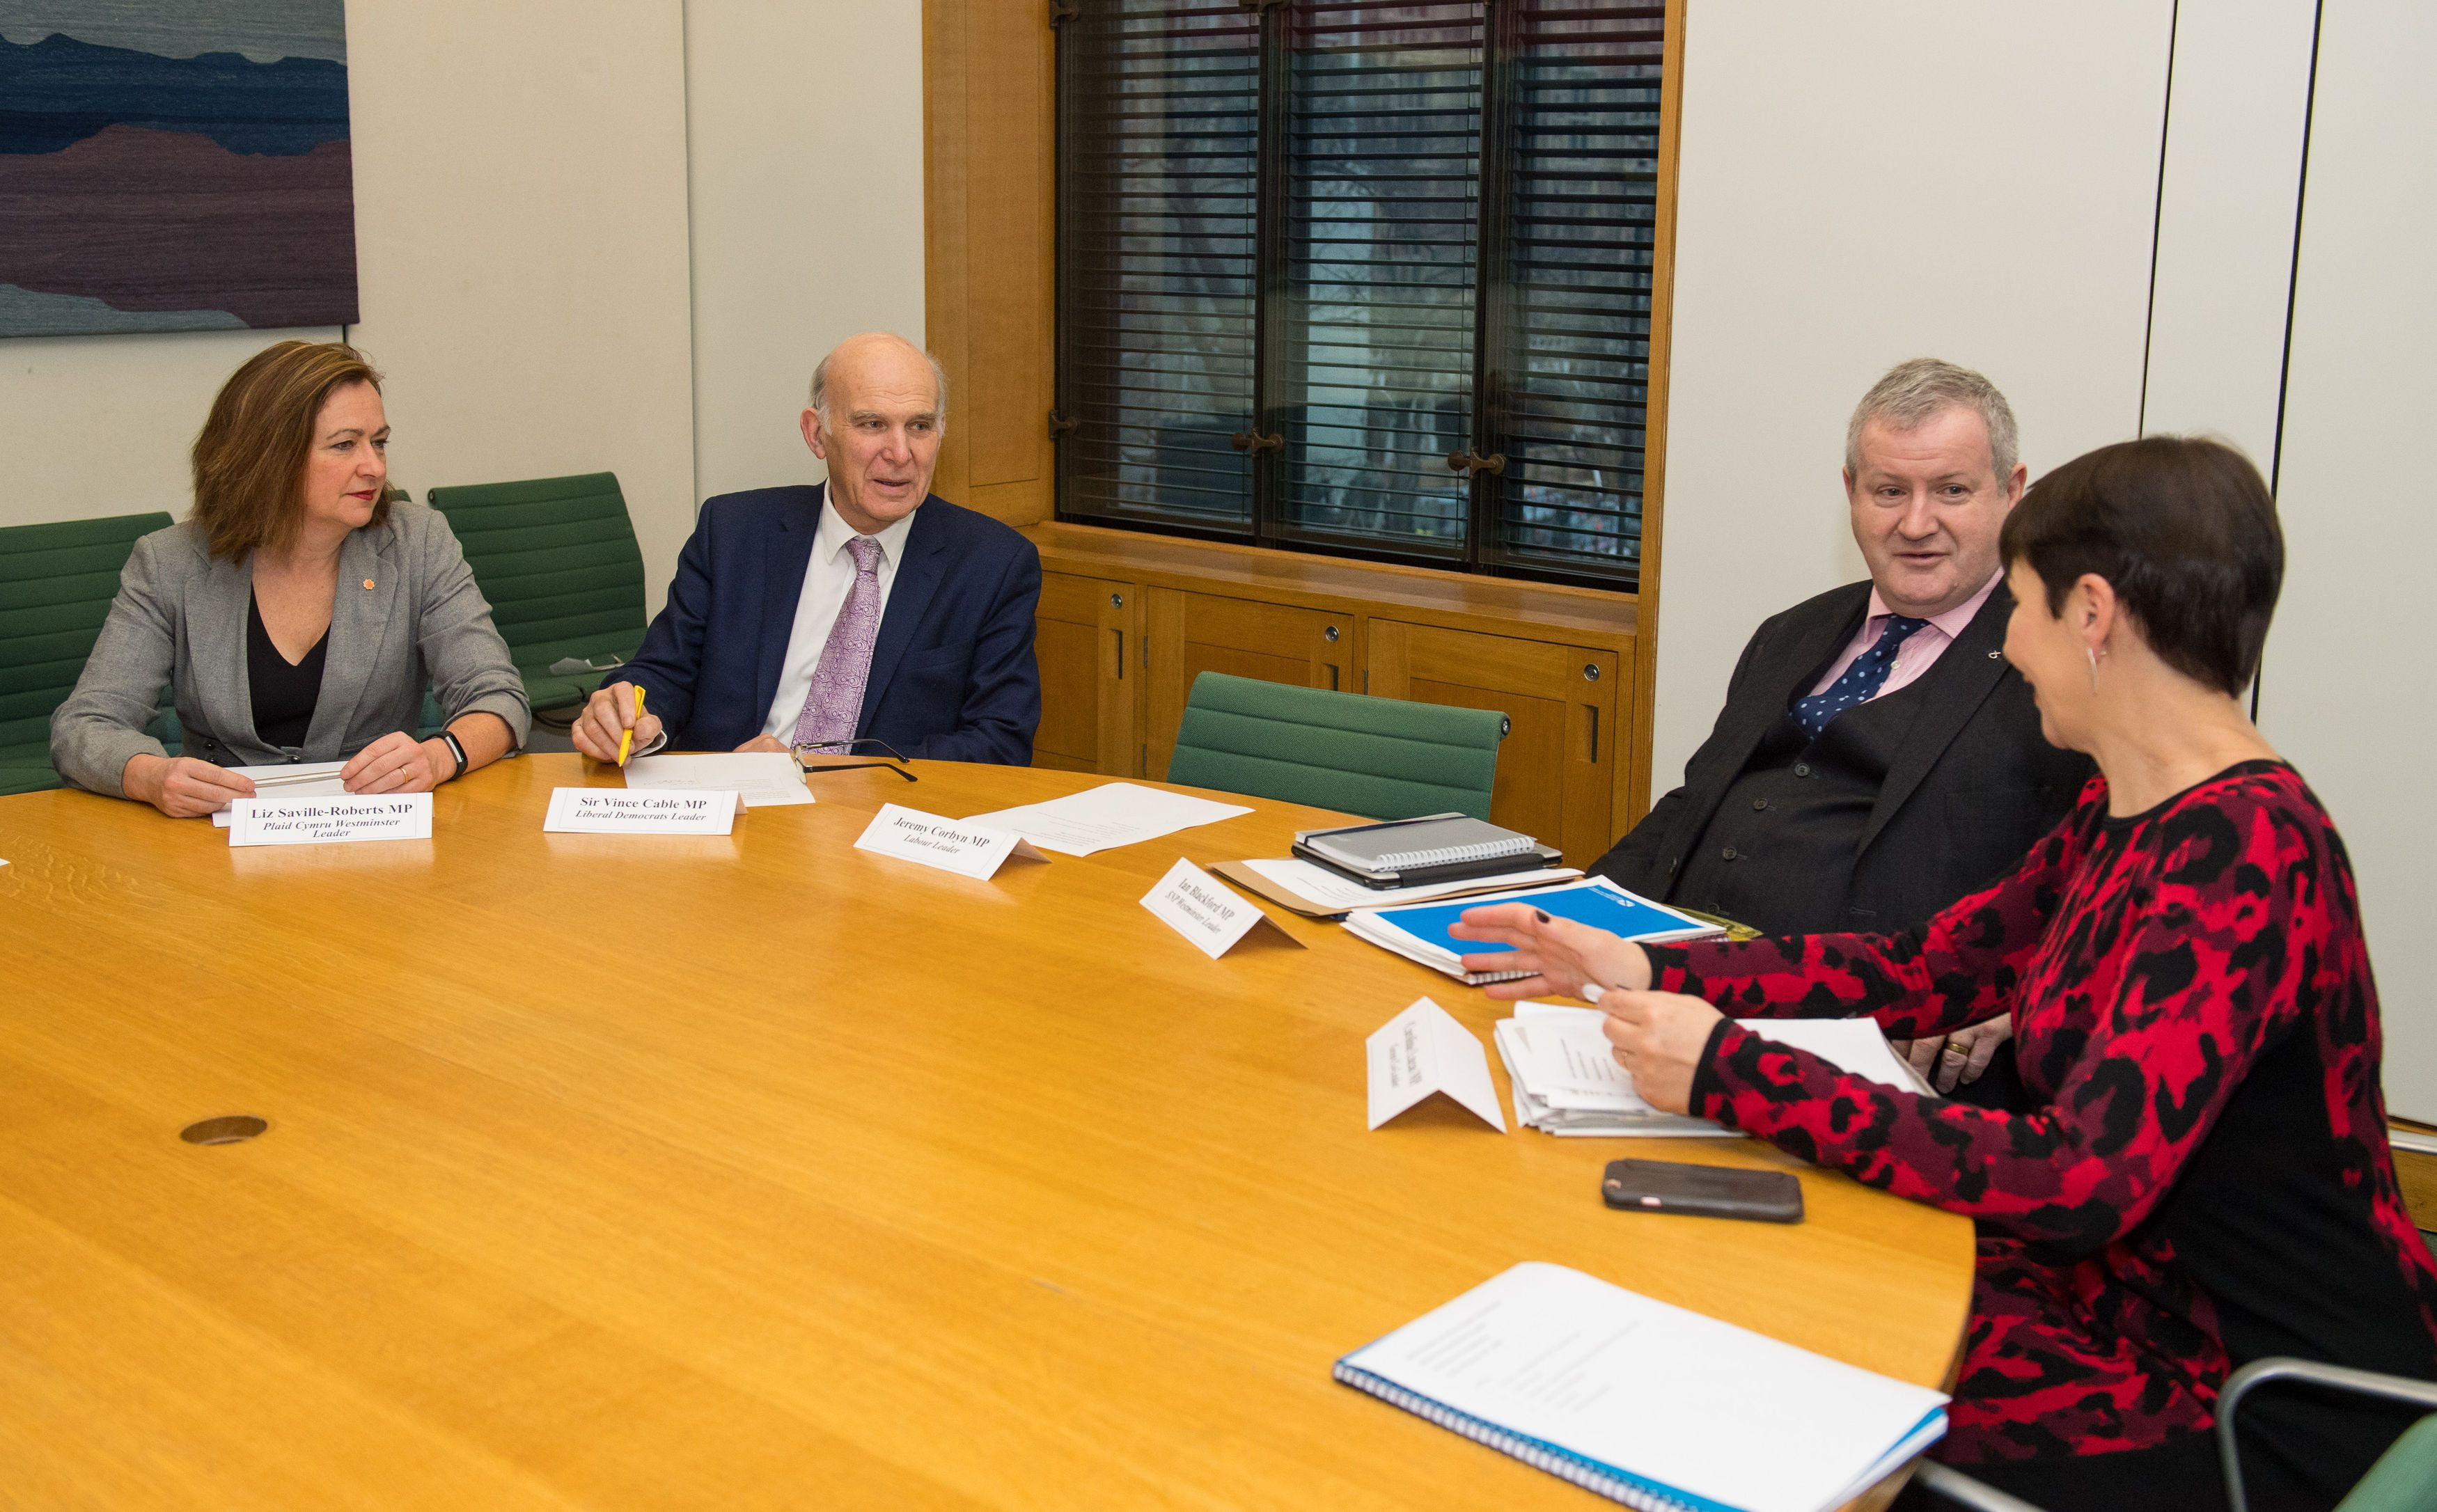 <strong>Liz Saville-Roberts with Vince Cable, Ian Blackford and Caroline Lucas at the cross-party summit on fighting hard Brexit</strong>